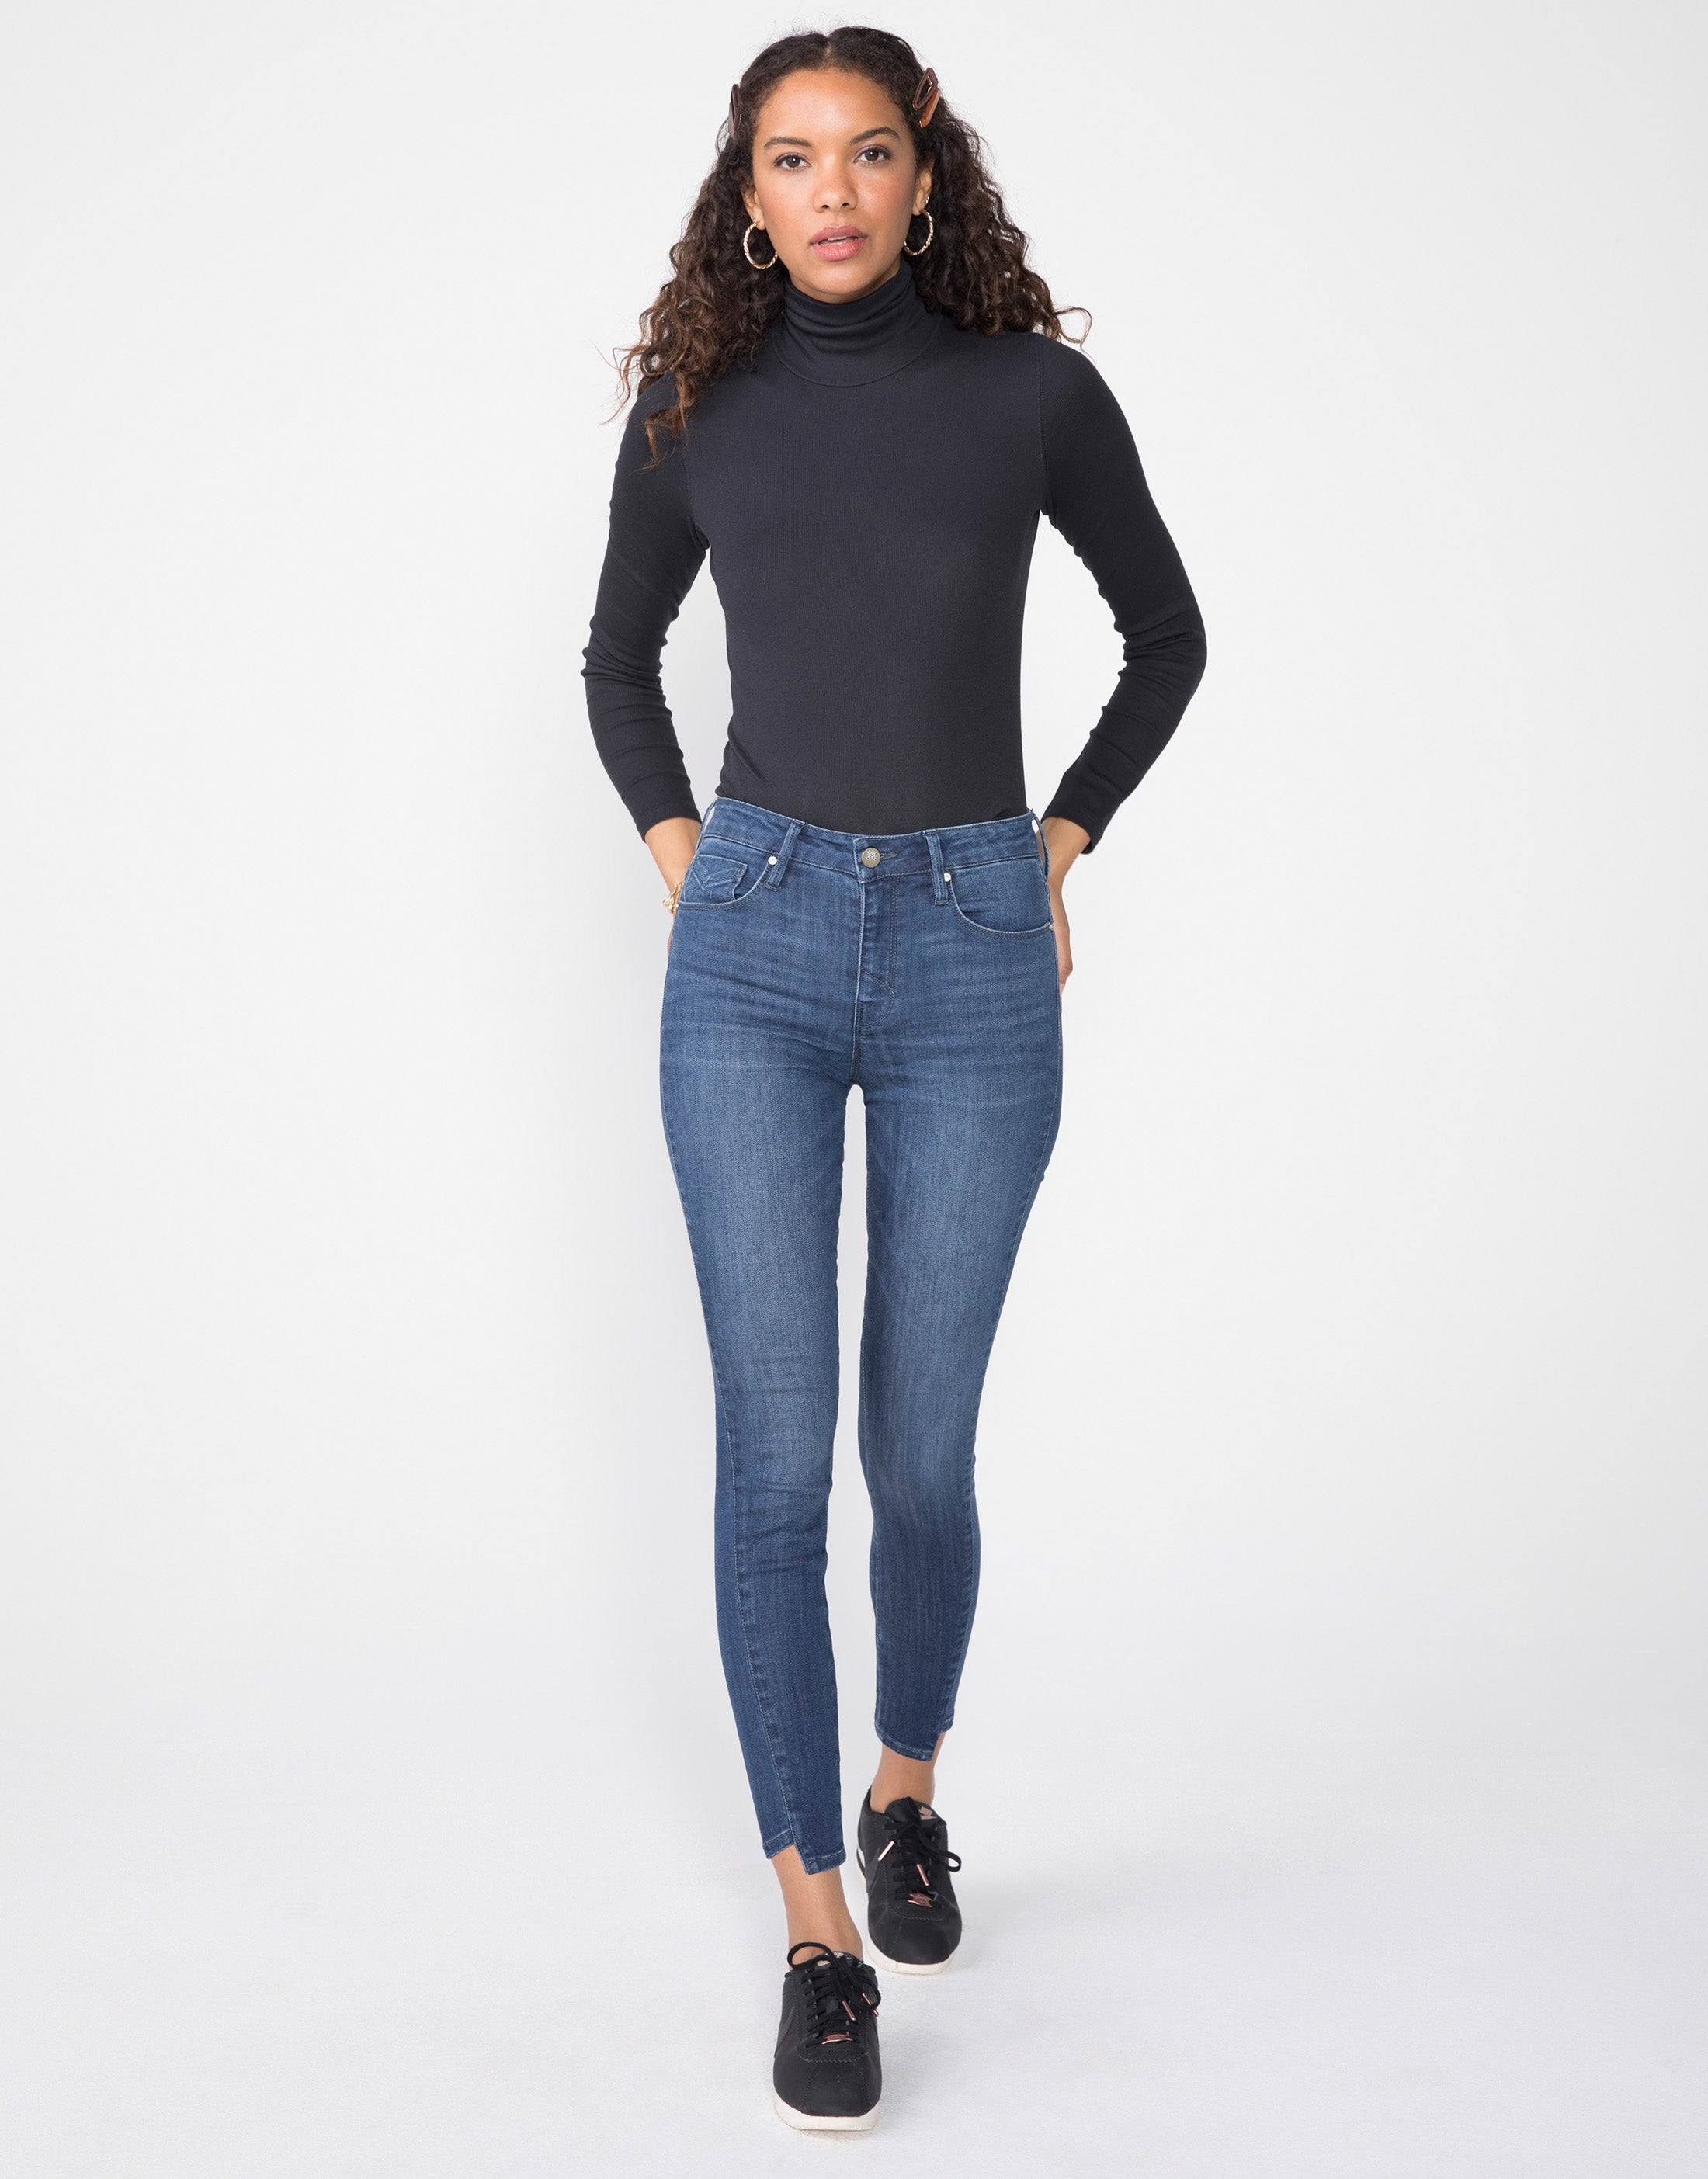 KORA Mid Rise Skinny in Shift